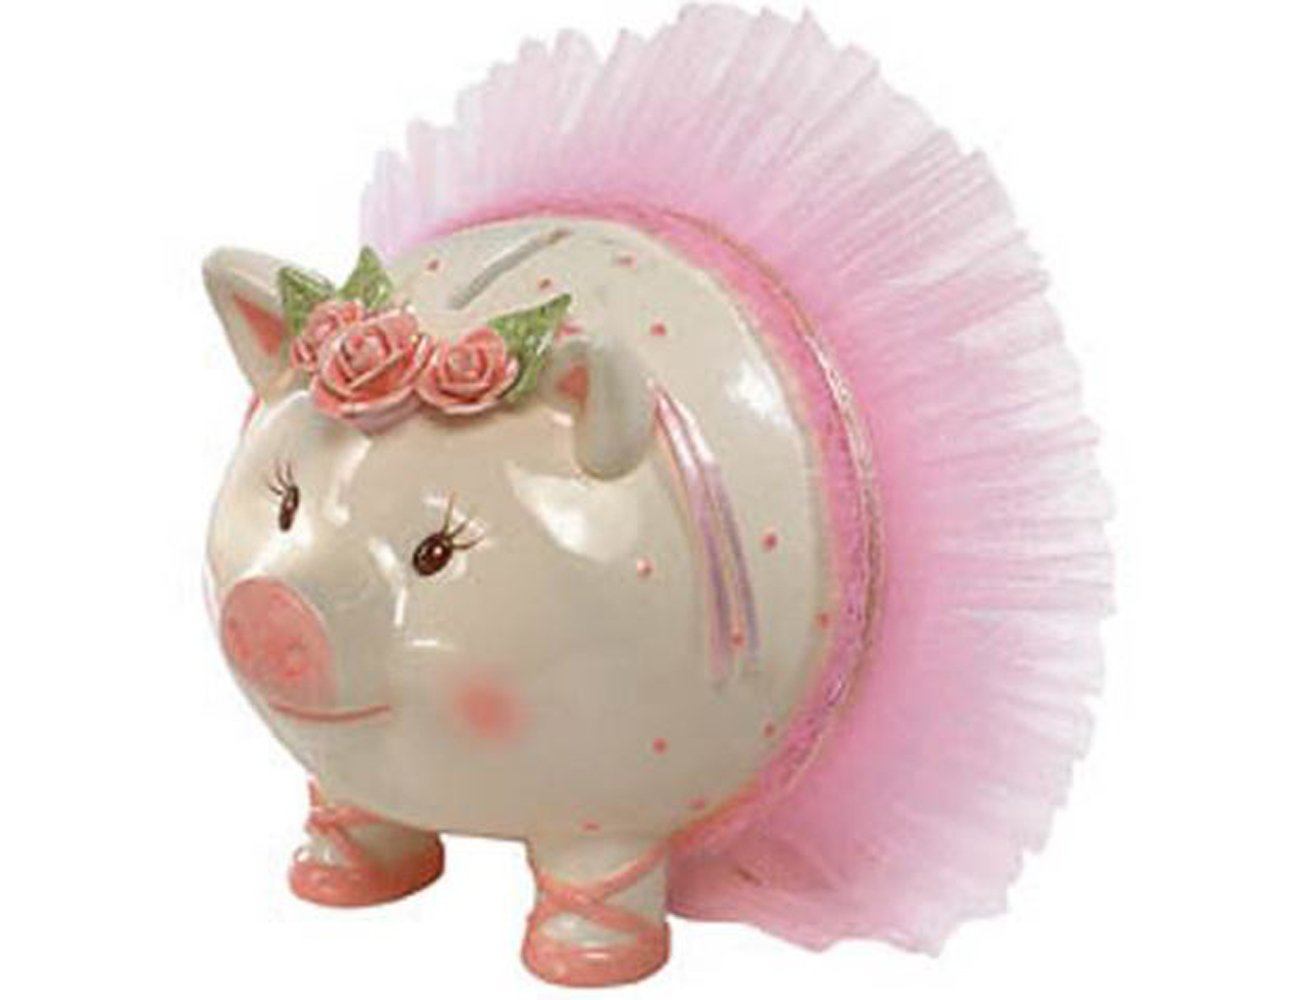 Mud pie ballerina piggy bank mud pie - Amazon Com Mud Pie Ballerina Kids Piggy Money Bank Hand Painted Ceramic 5 1 2 X 6 1 2 Baby